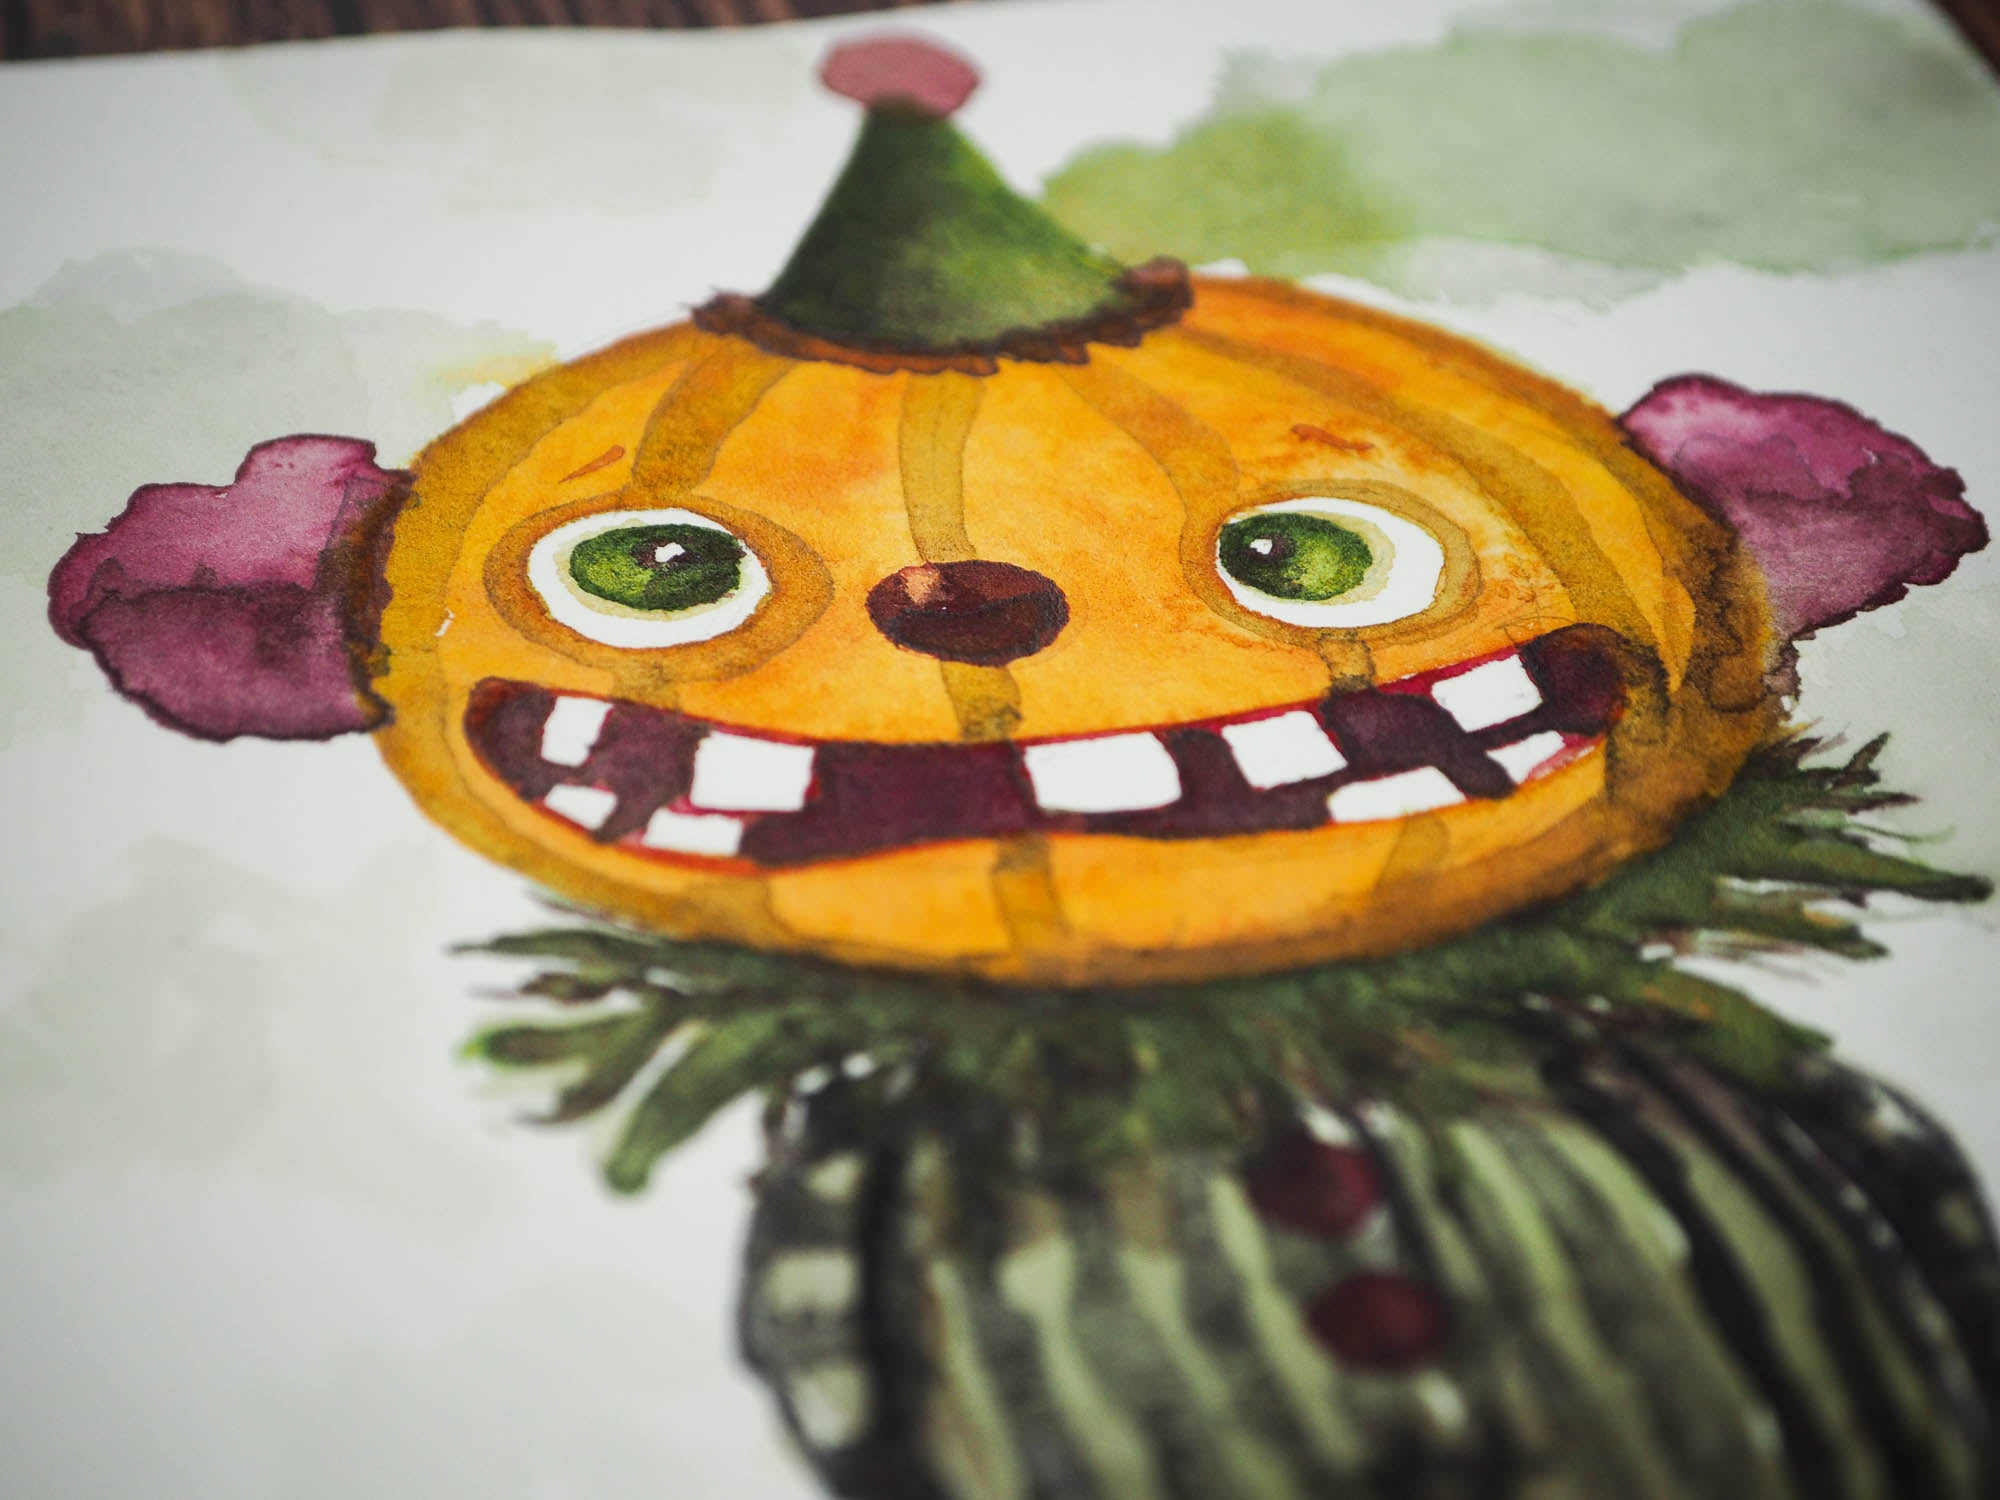 A SILLY PUMPKIN, Original Art by Danita Art